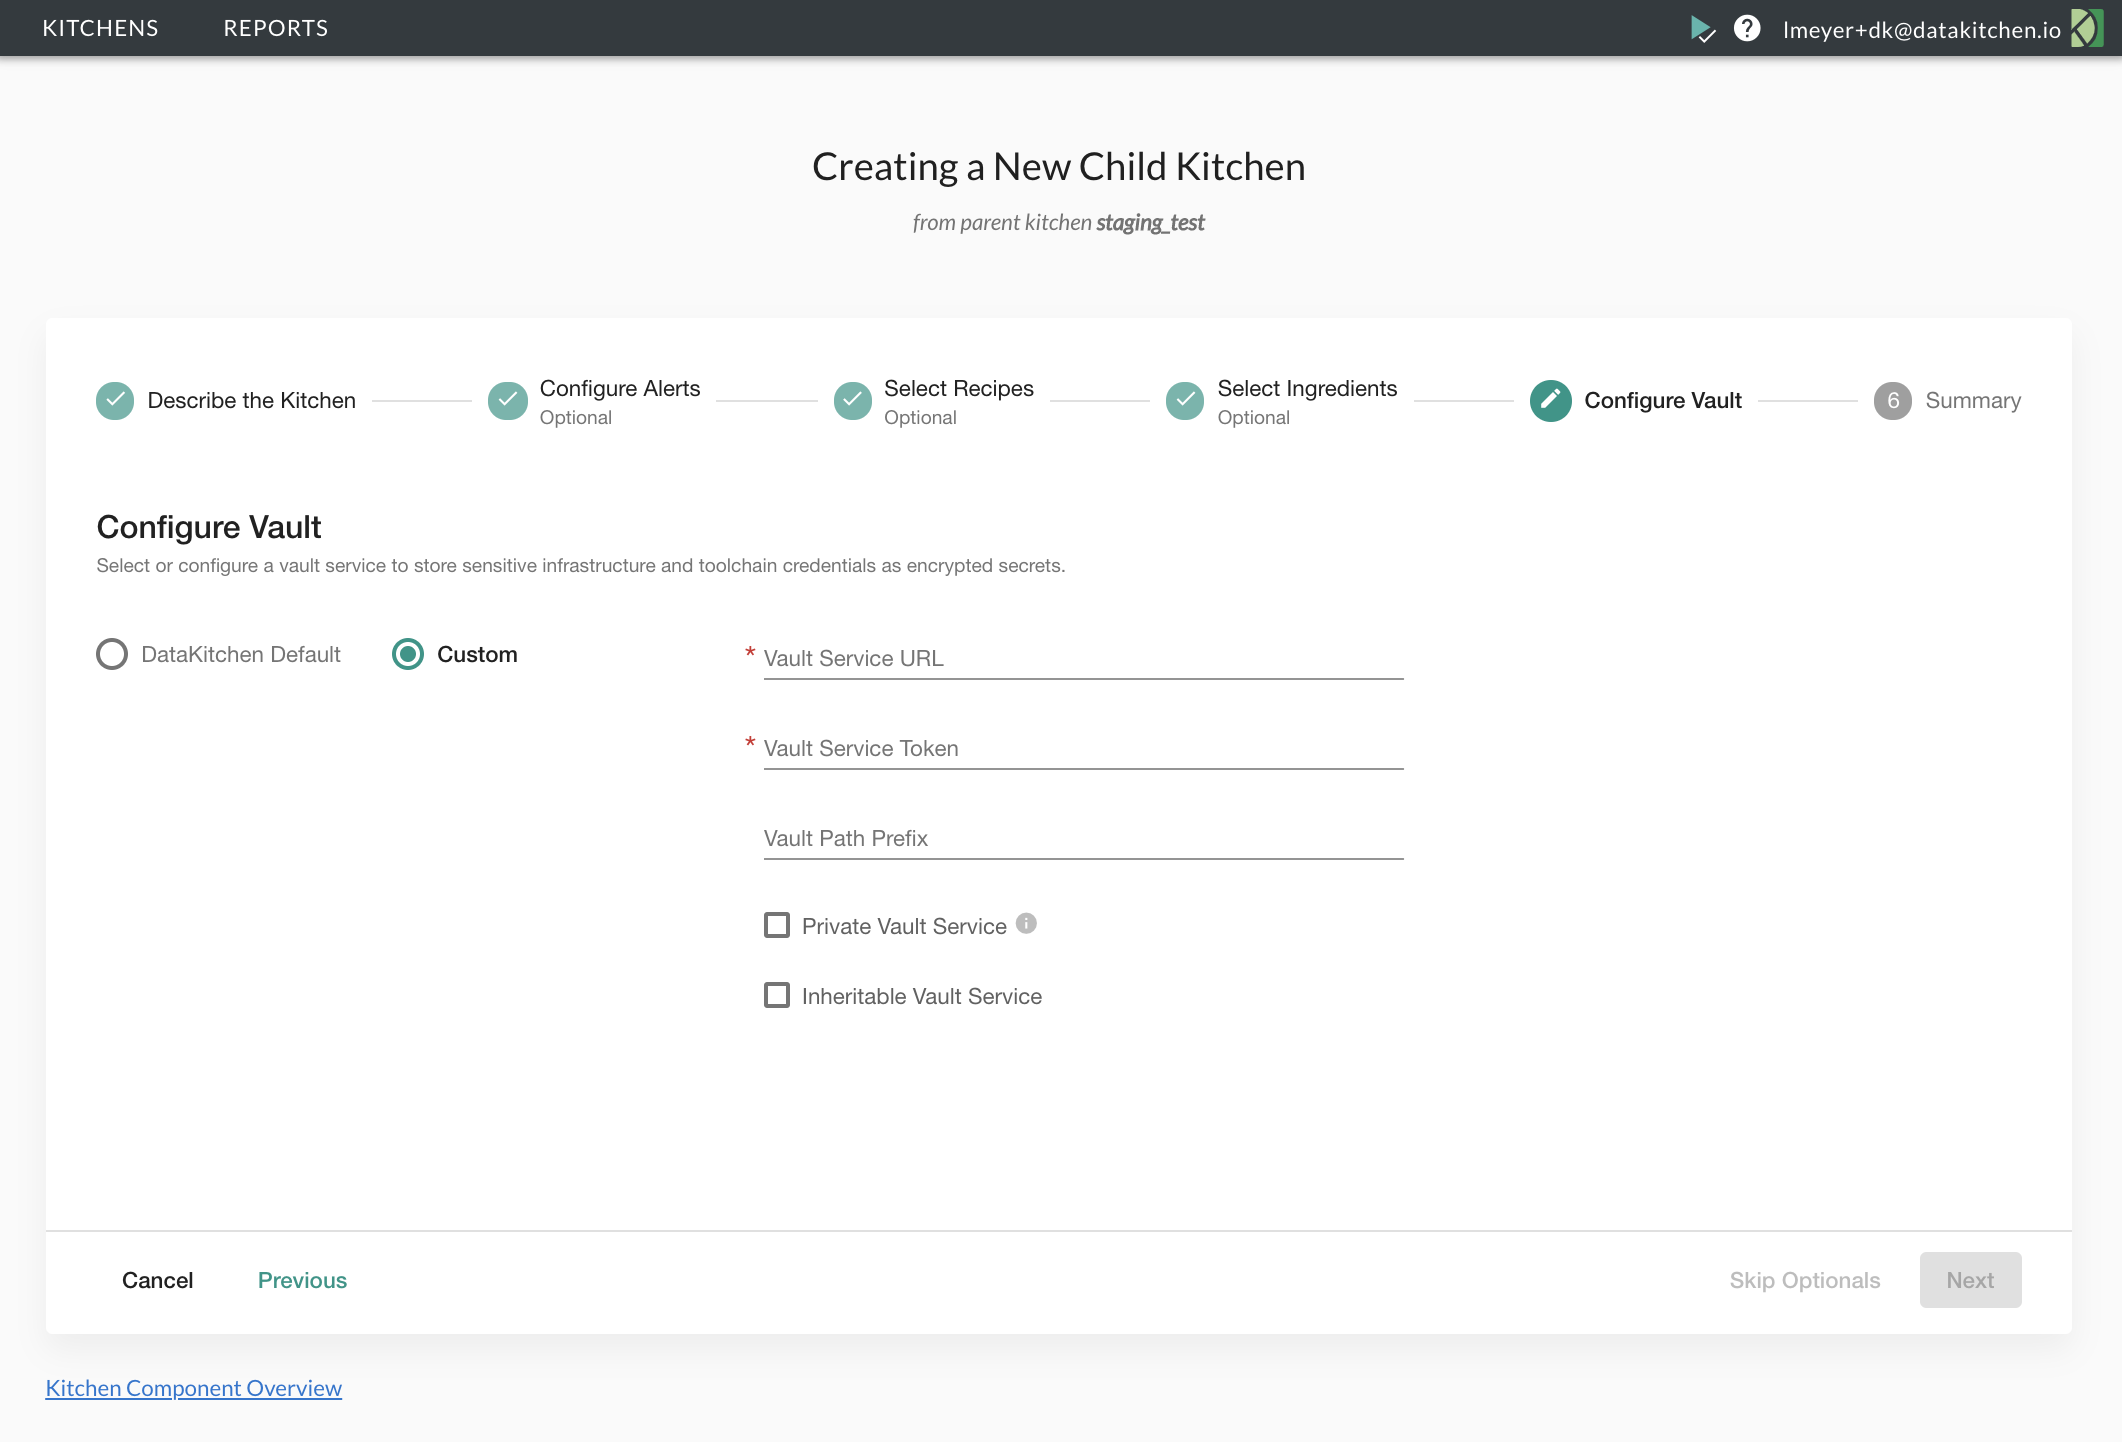 The connection settings for a custom kitchen vault.